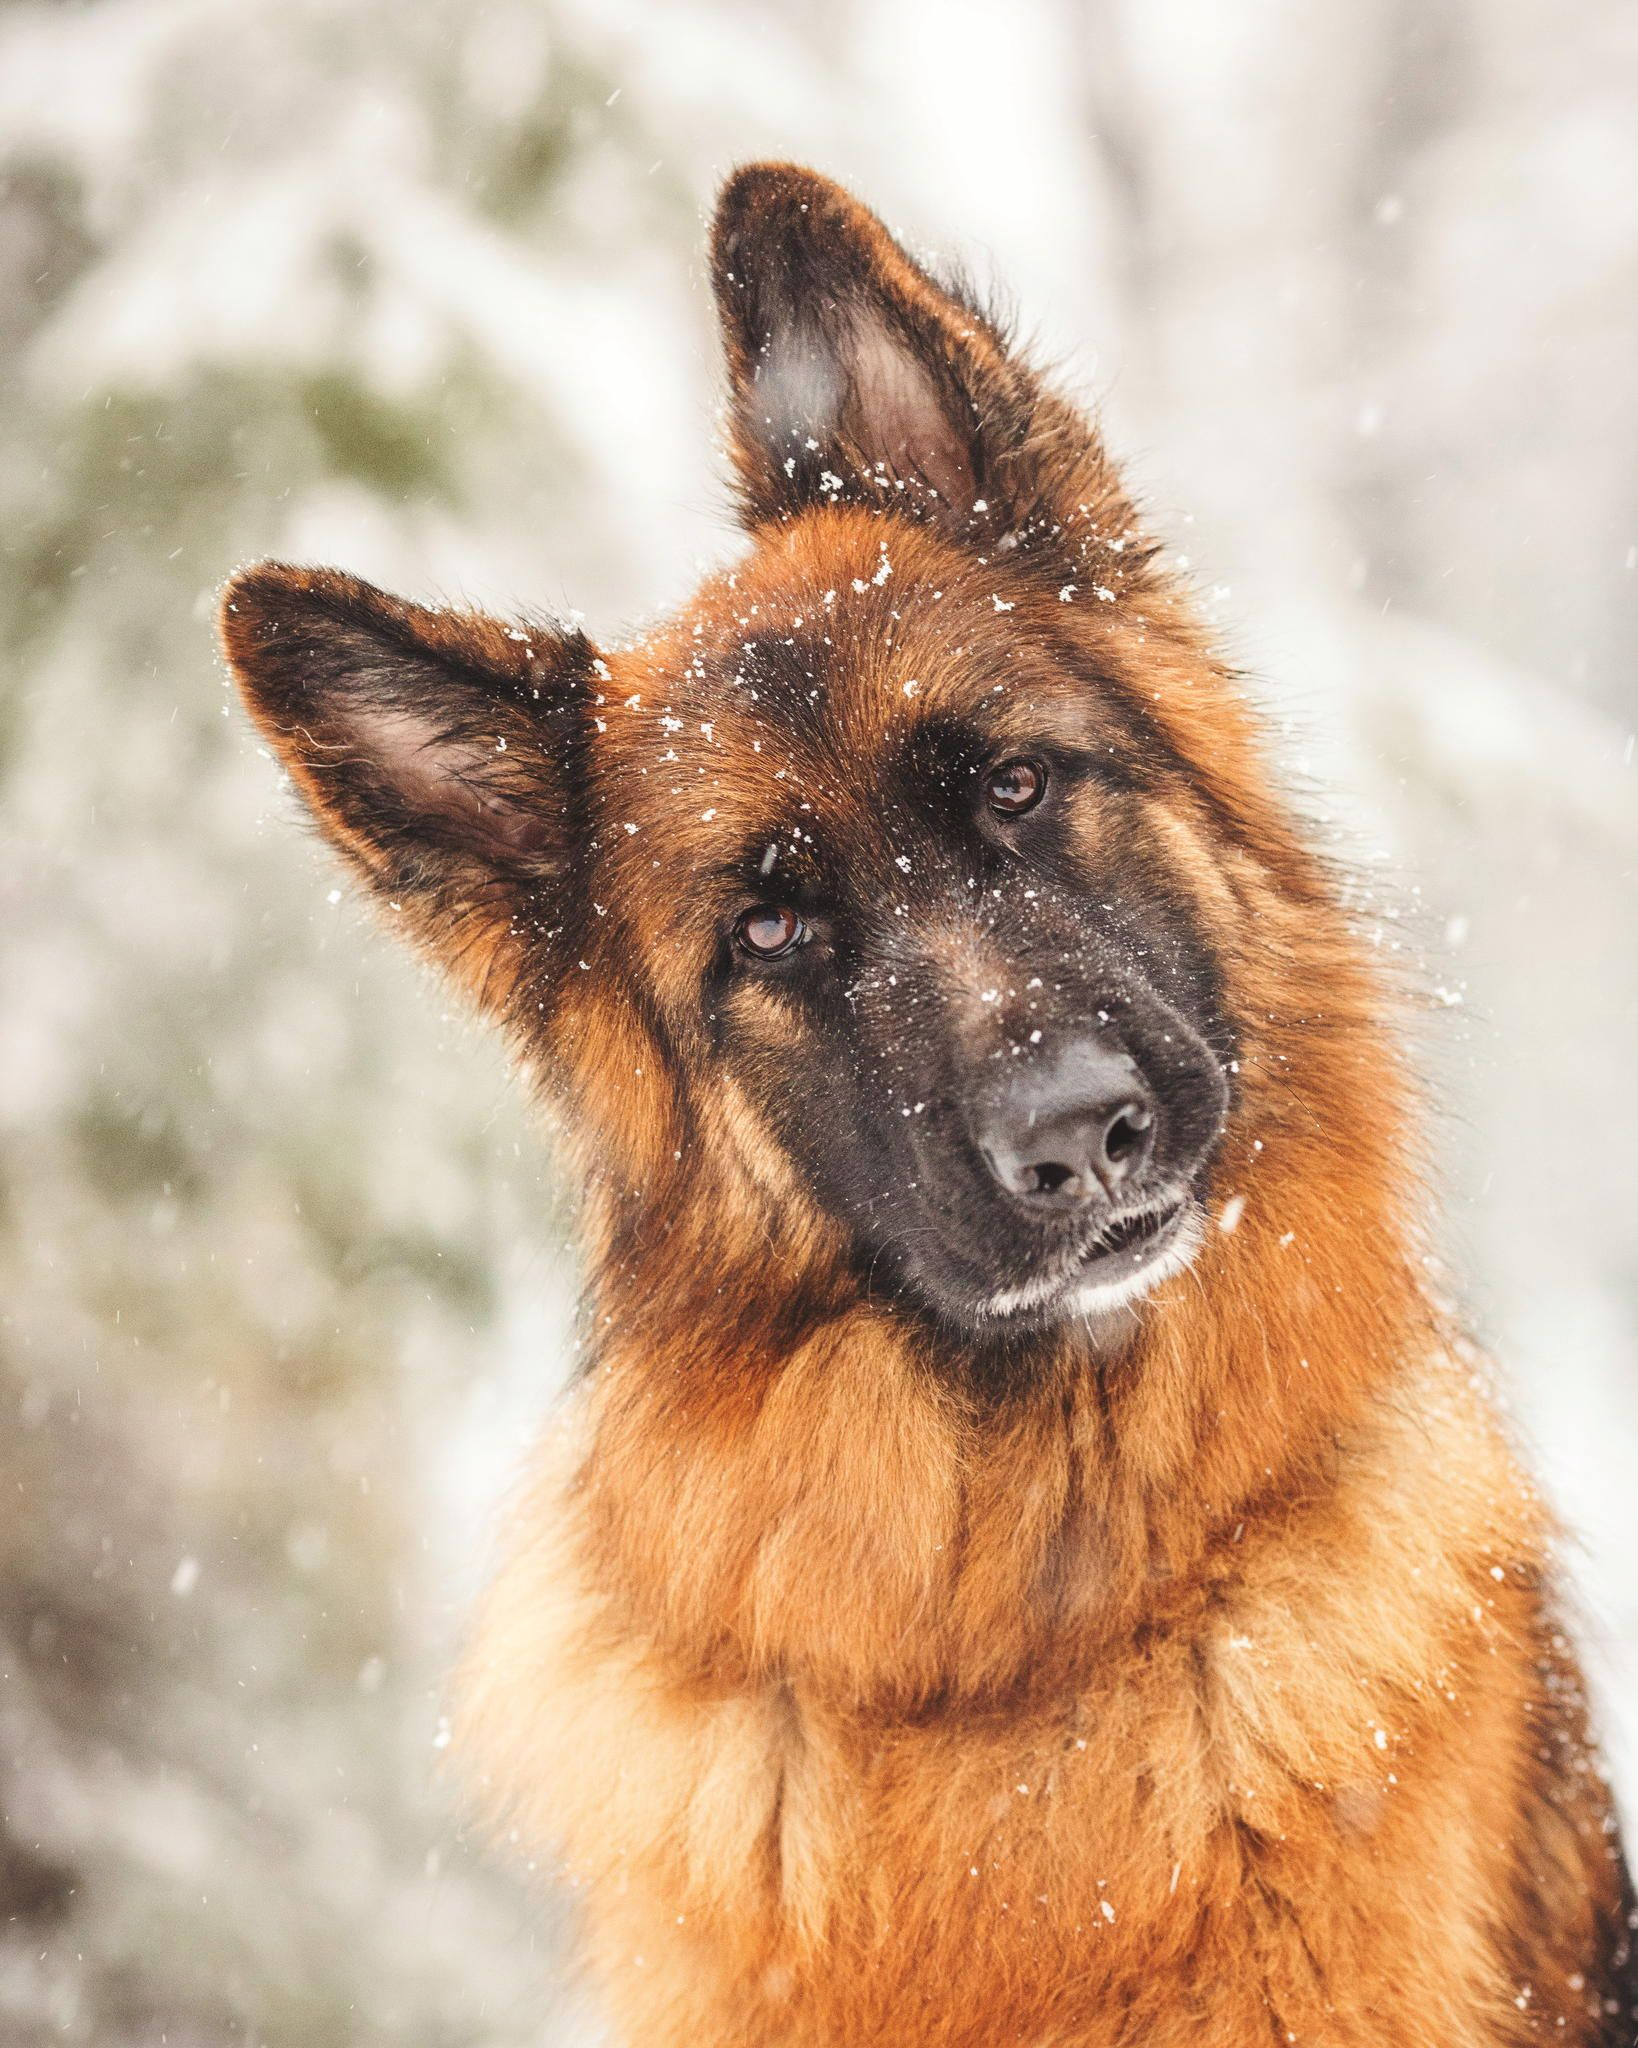 Snow Storm Dogs by Kristin Castenschiold on 500px